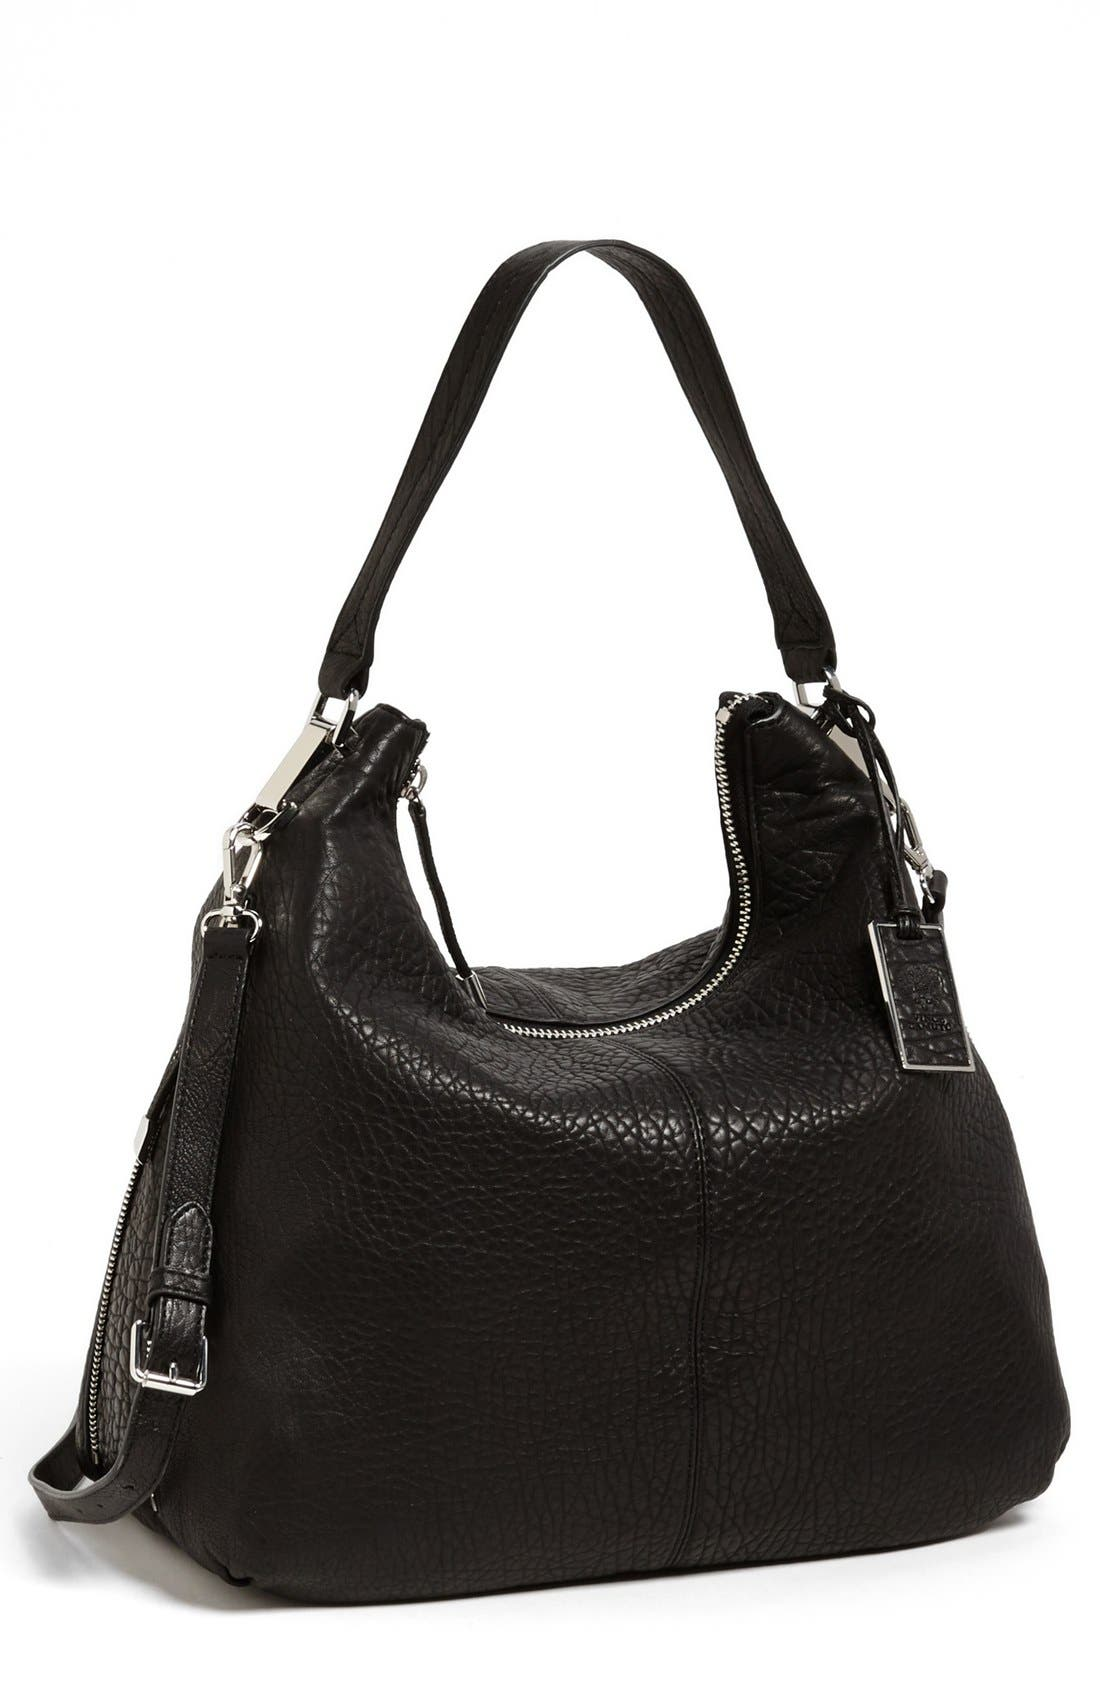 Main Image - Vince Camuto 'Riley' Hobo